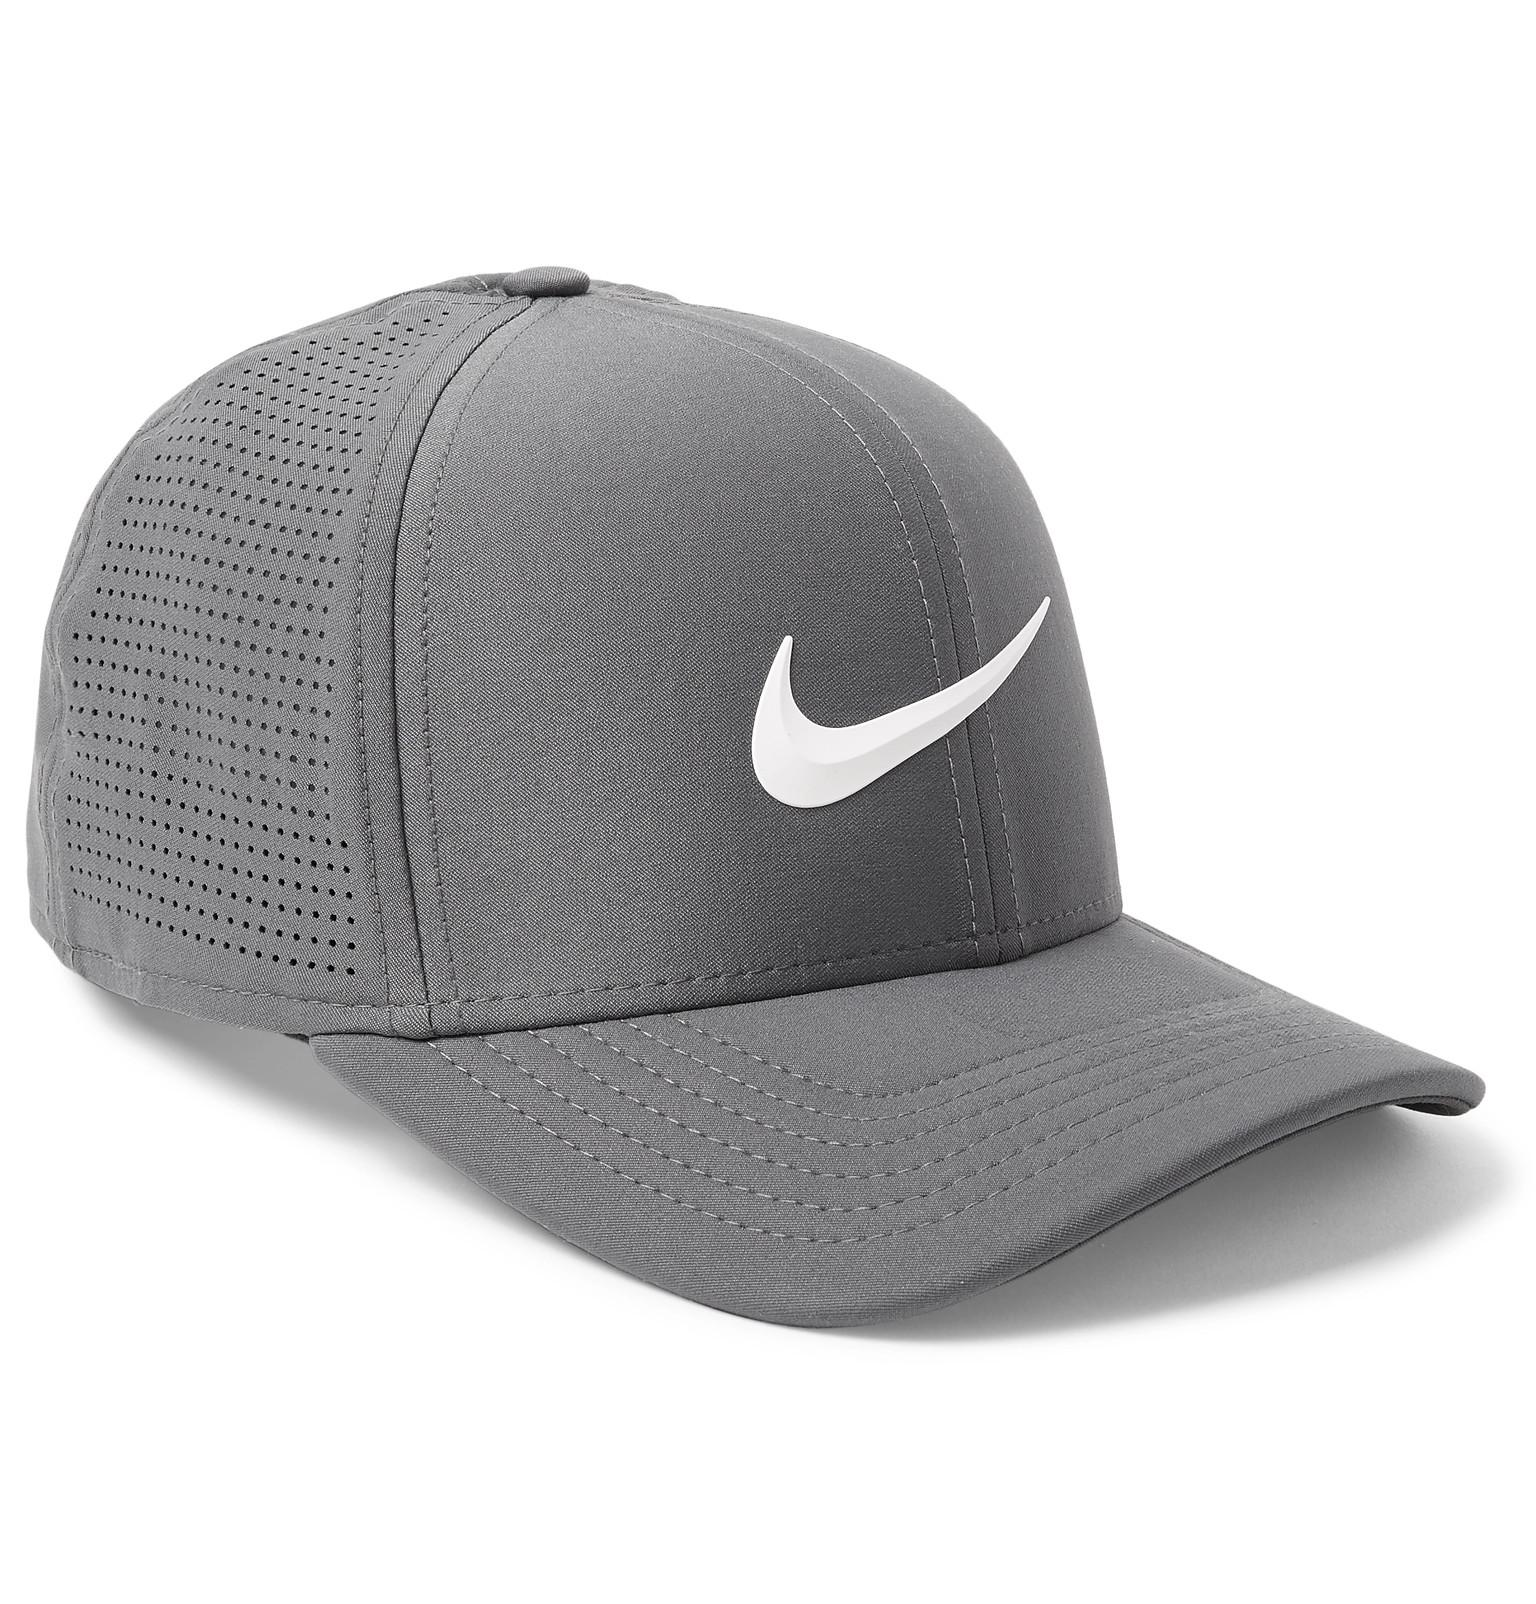 4043e4bd Nike Aerobill Classic 99 Dri-fit Golf Cap in Gray for Men - Lyst